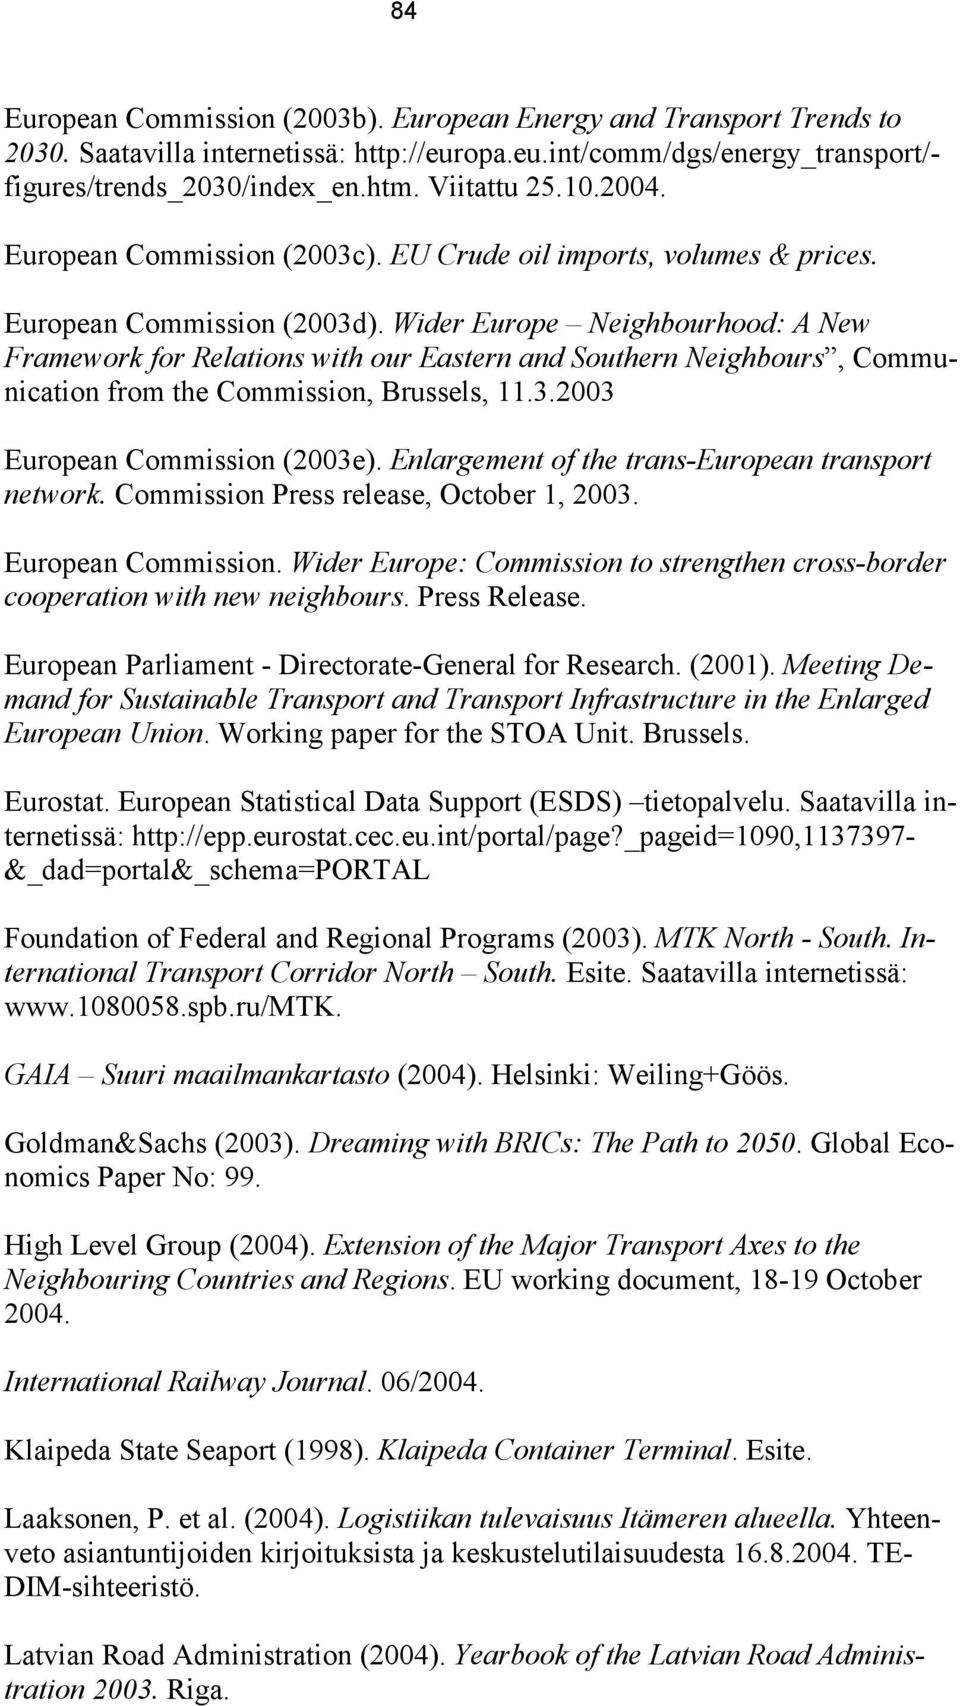 Wider Europe Neighbourhood: A New Framework for Relations with our Eastern and Southern Neighbours, Communication from the Commission, Brussels, 11.3.2003 European Commission (2003e).